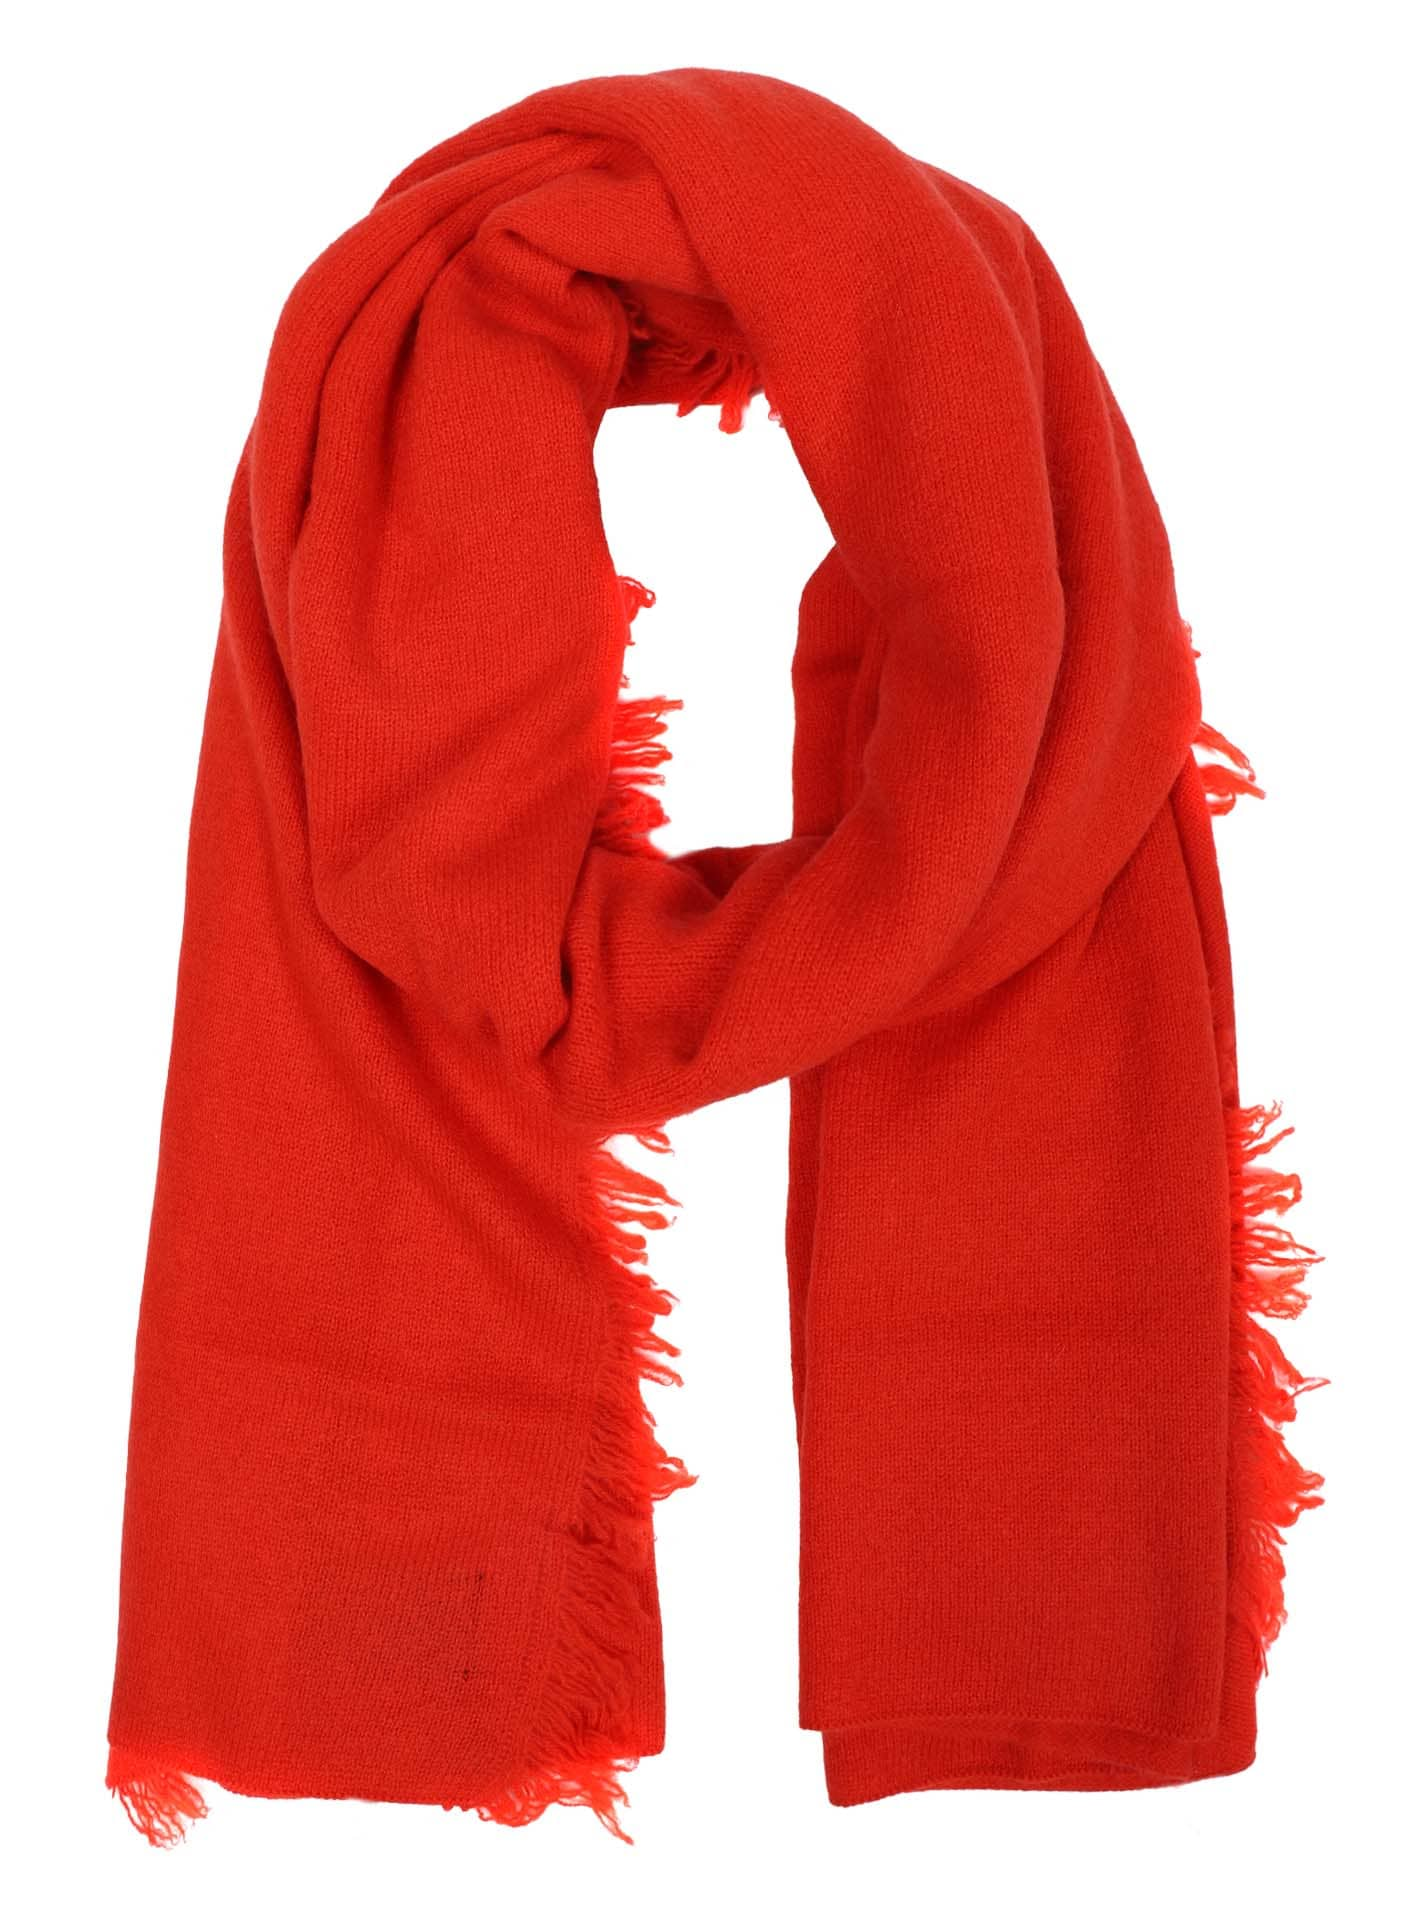 Fransenschal Cashmere Orange